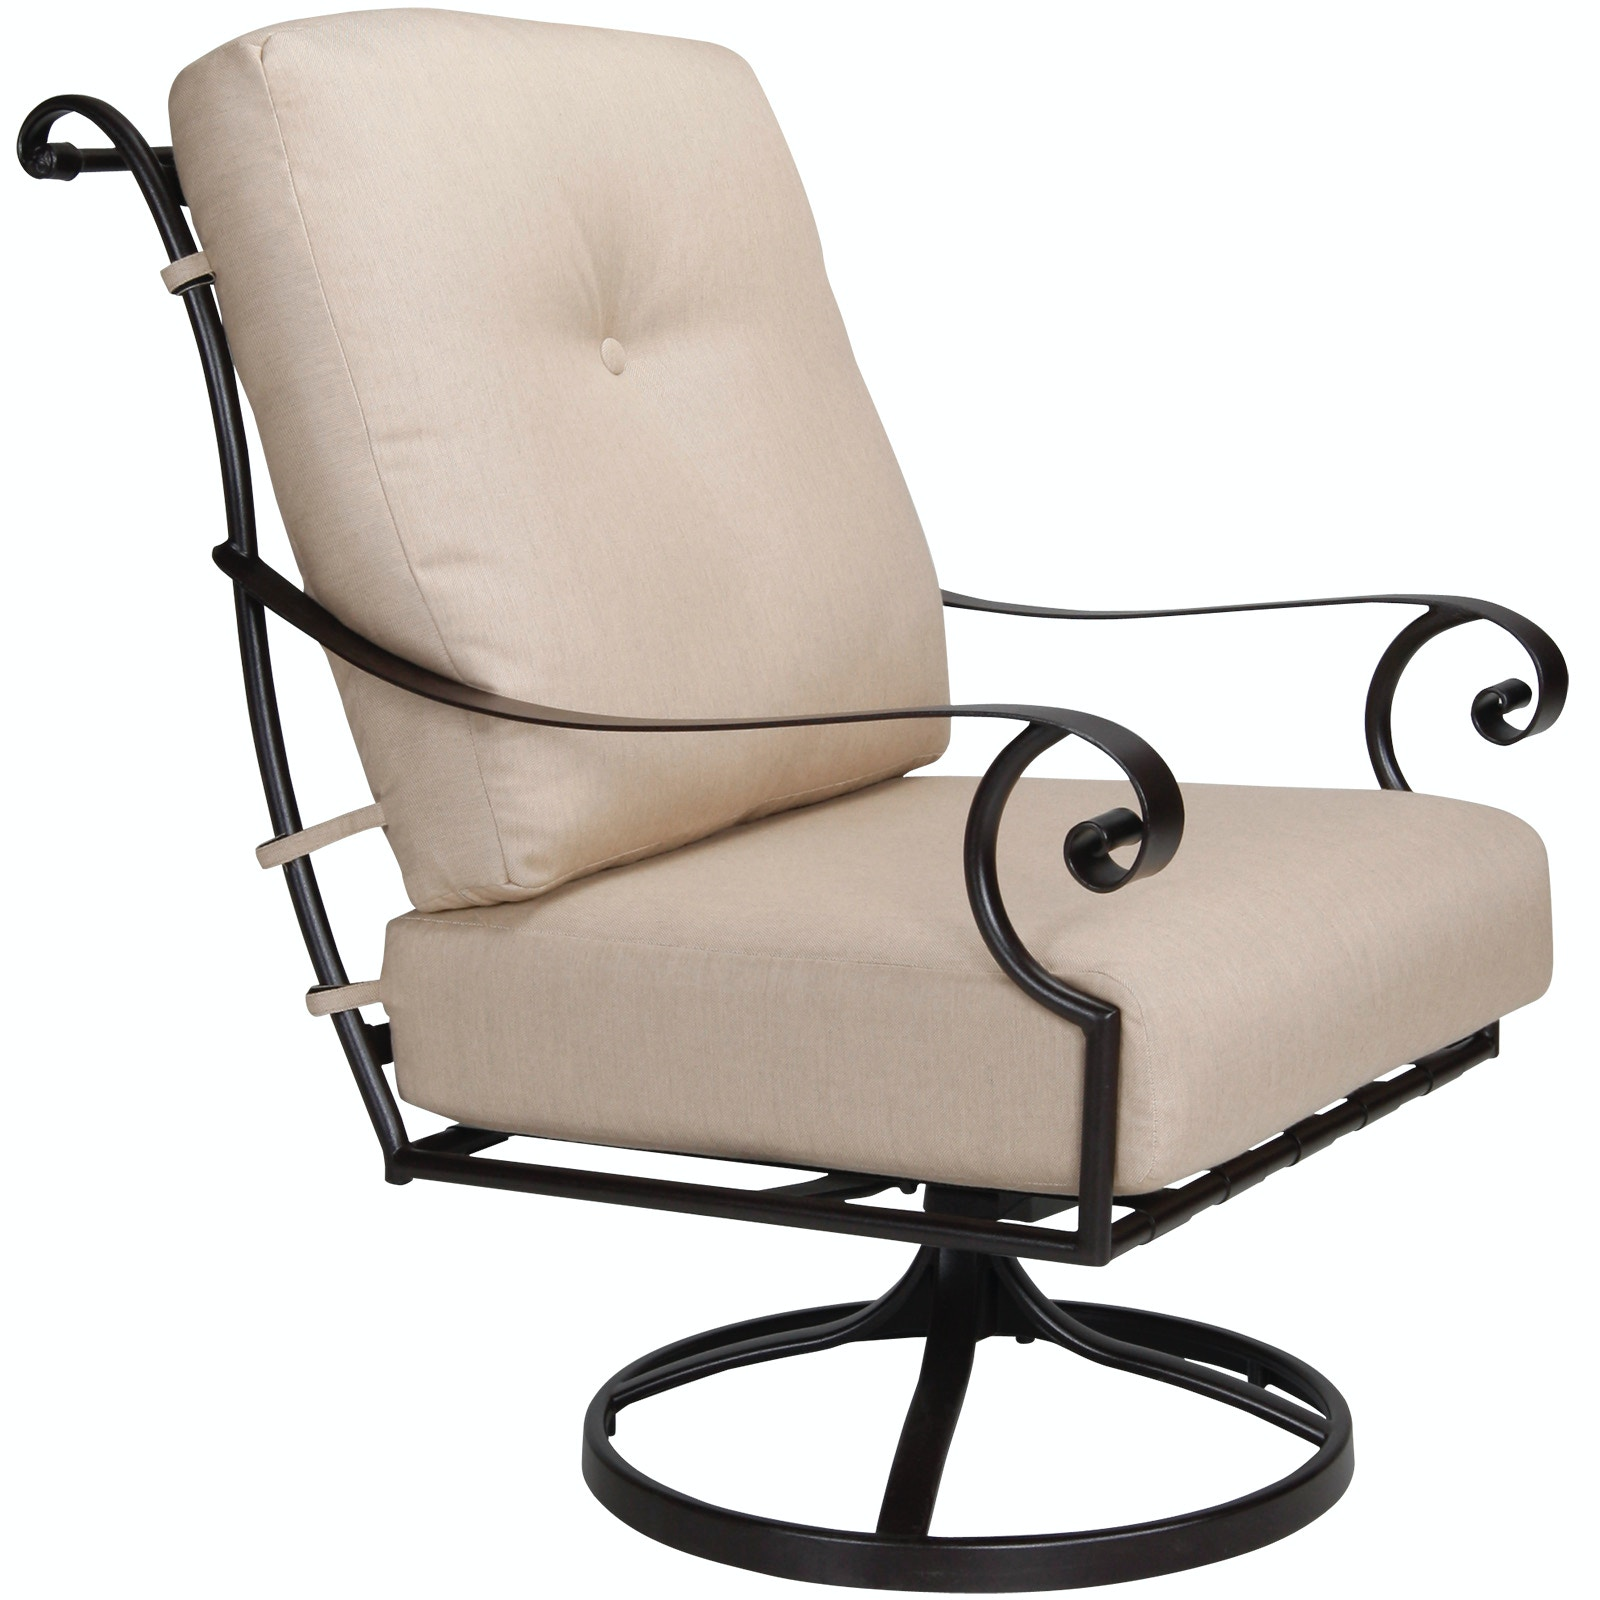 OW Lee Furniture St. Charles Swivel Rocker Lounge Chair Owlee Furniture  26125 SR